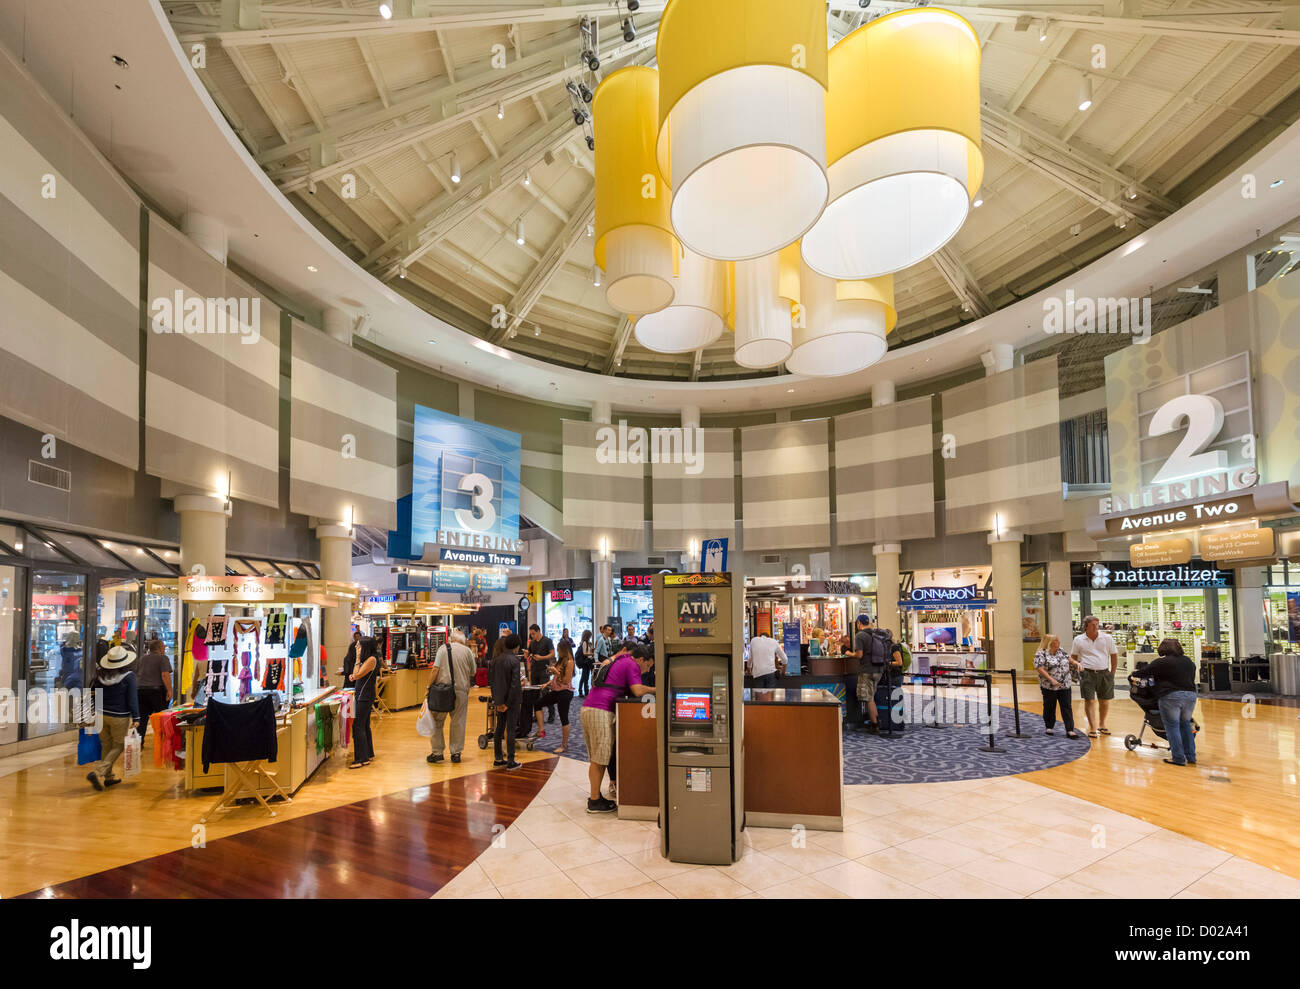 Interior of the Sawgrass Mills shopping mall (the 2nd largest in Florida), Sunrise, Broward County, Florida, USA - Stock Image